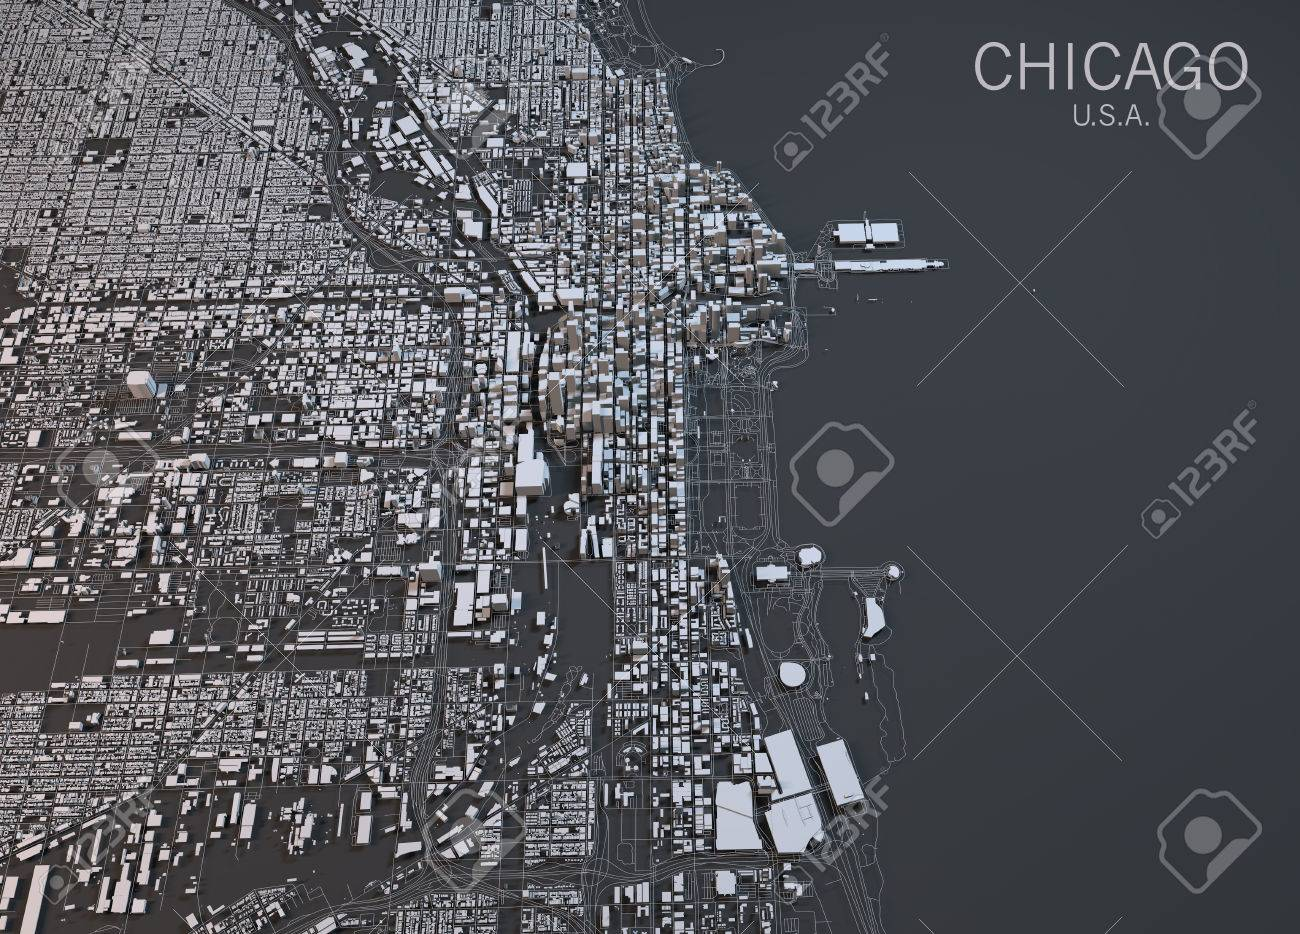 Chicago map satellite view United States Stock